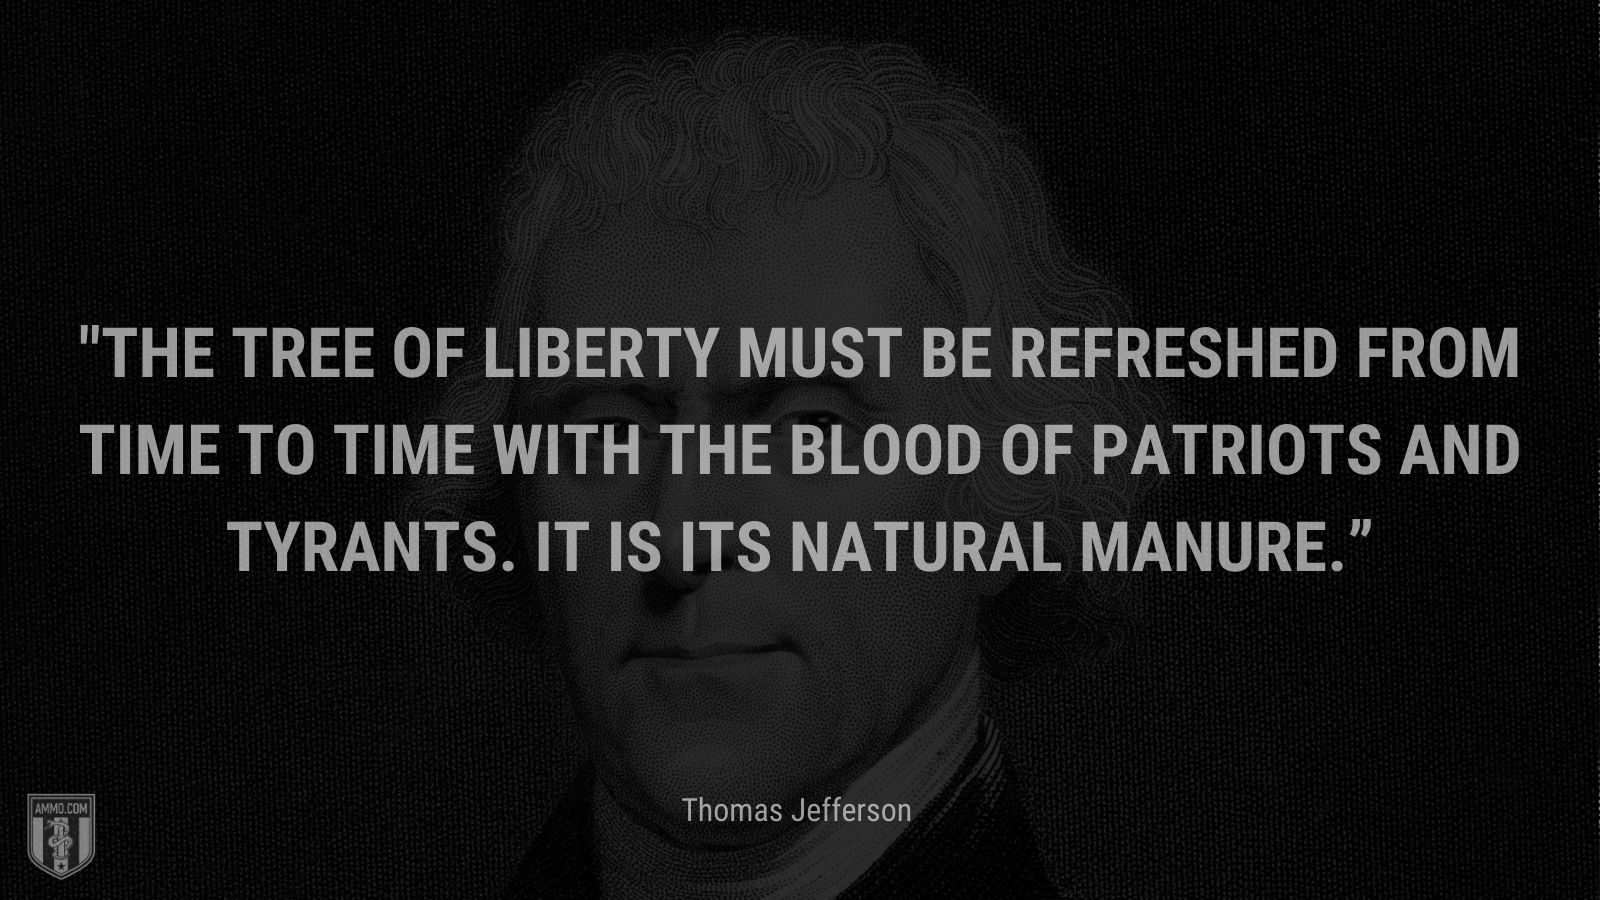 """""""The tree of liberty must be refreshed from time to time with the blood of patriots and tyrants. It is its natural manure."""" - Thomas Jefferson"""